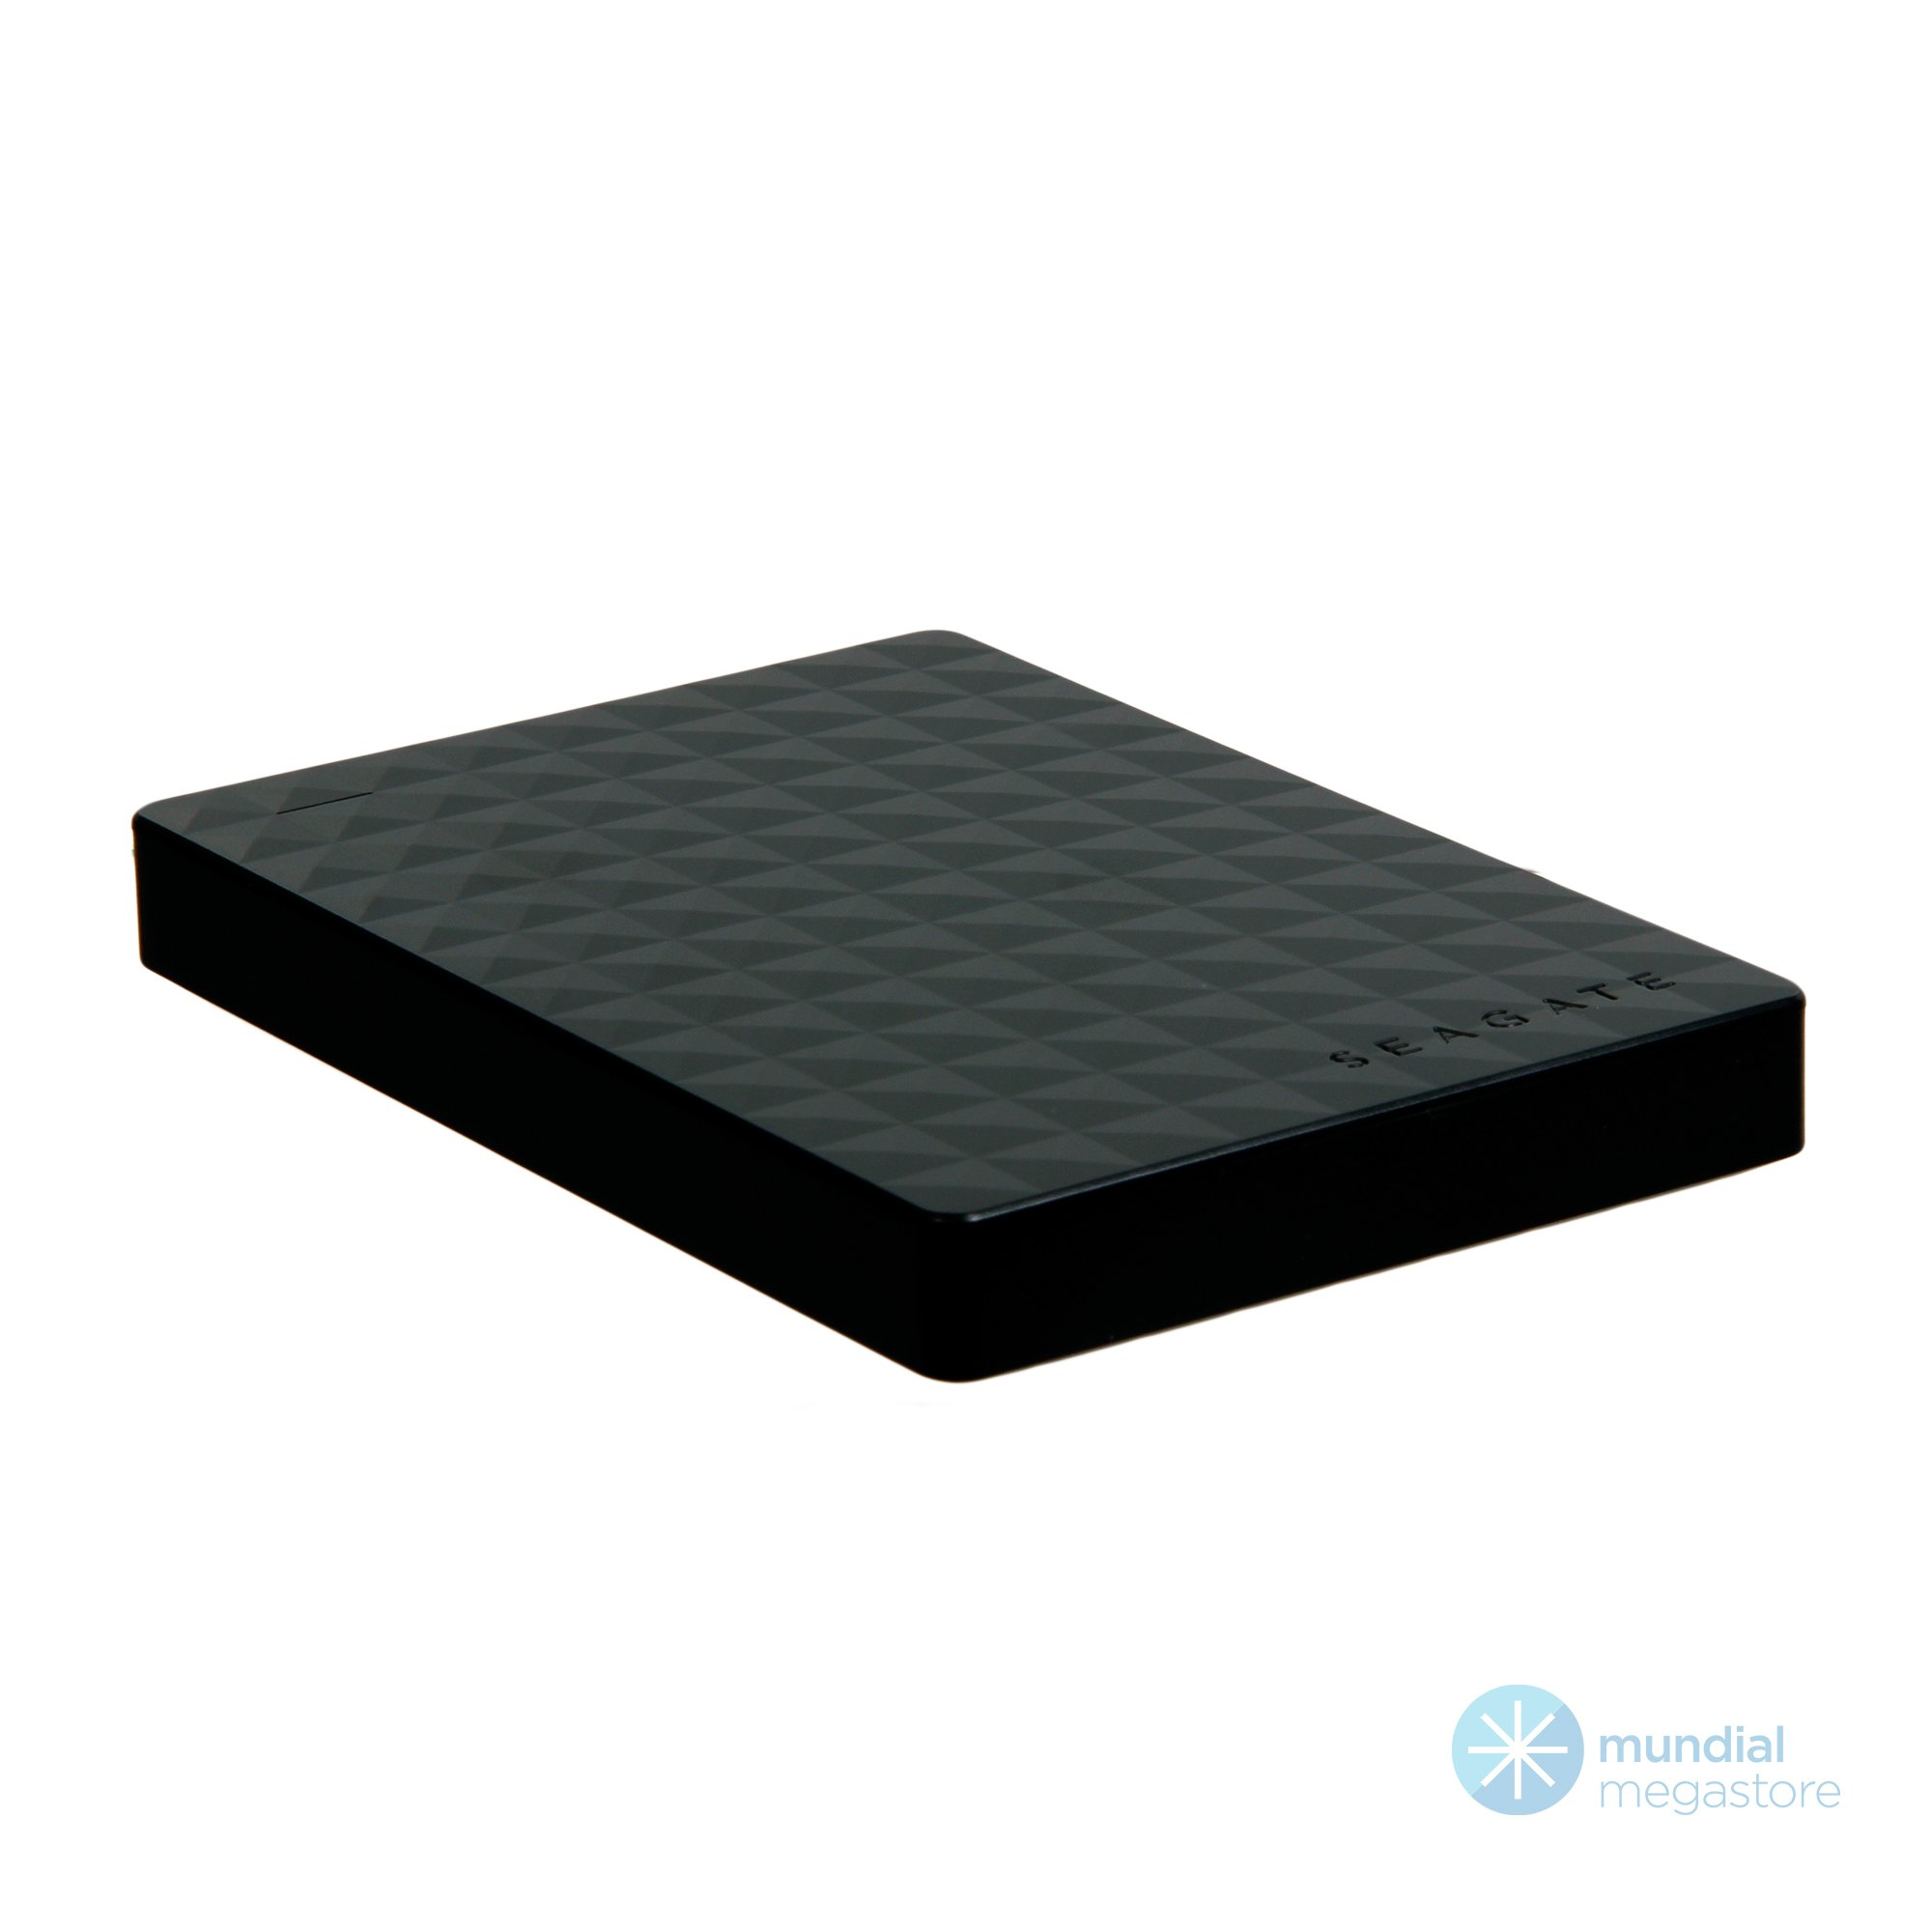 hd externo usb 25 10tb seagate expansion 30 37148 2000 195844